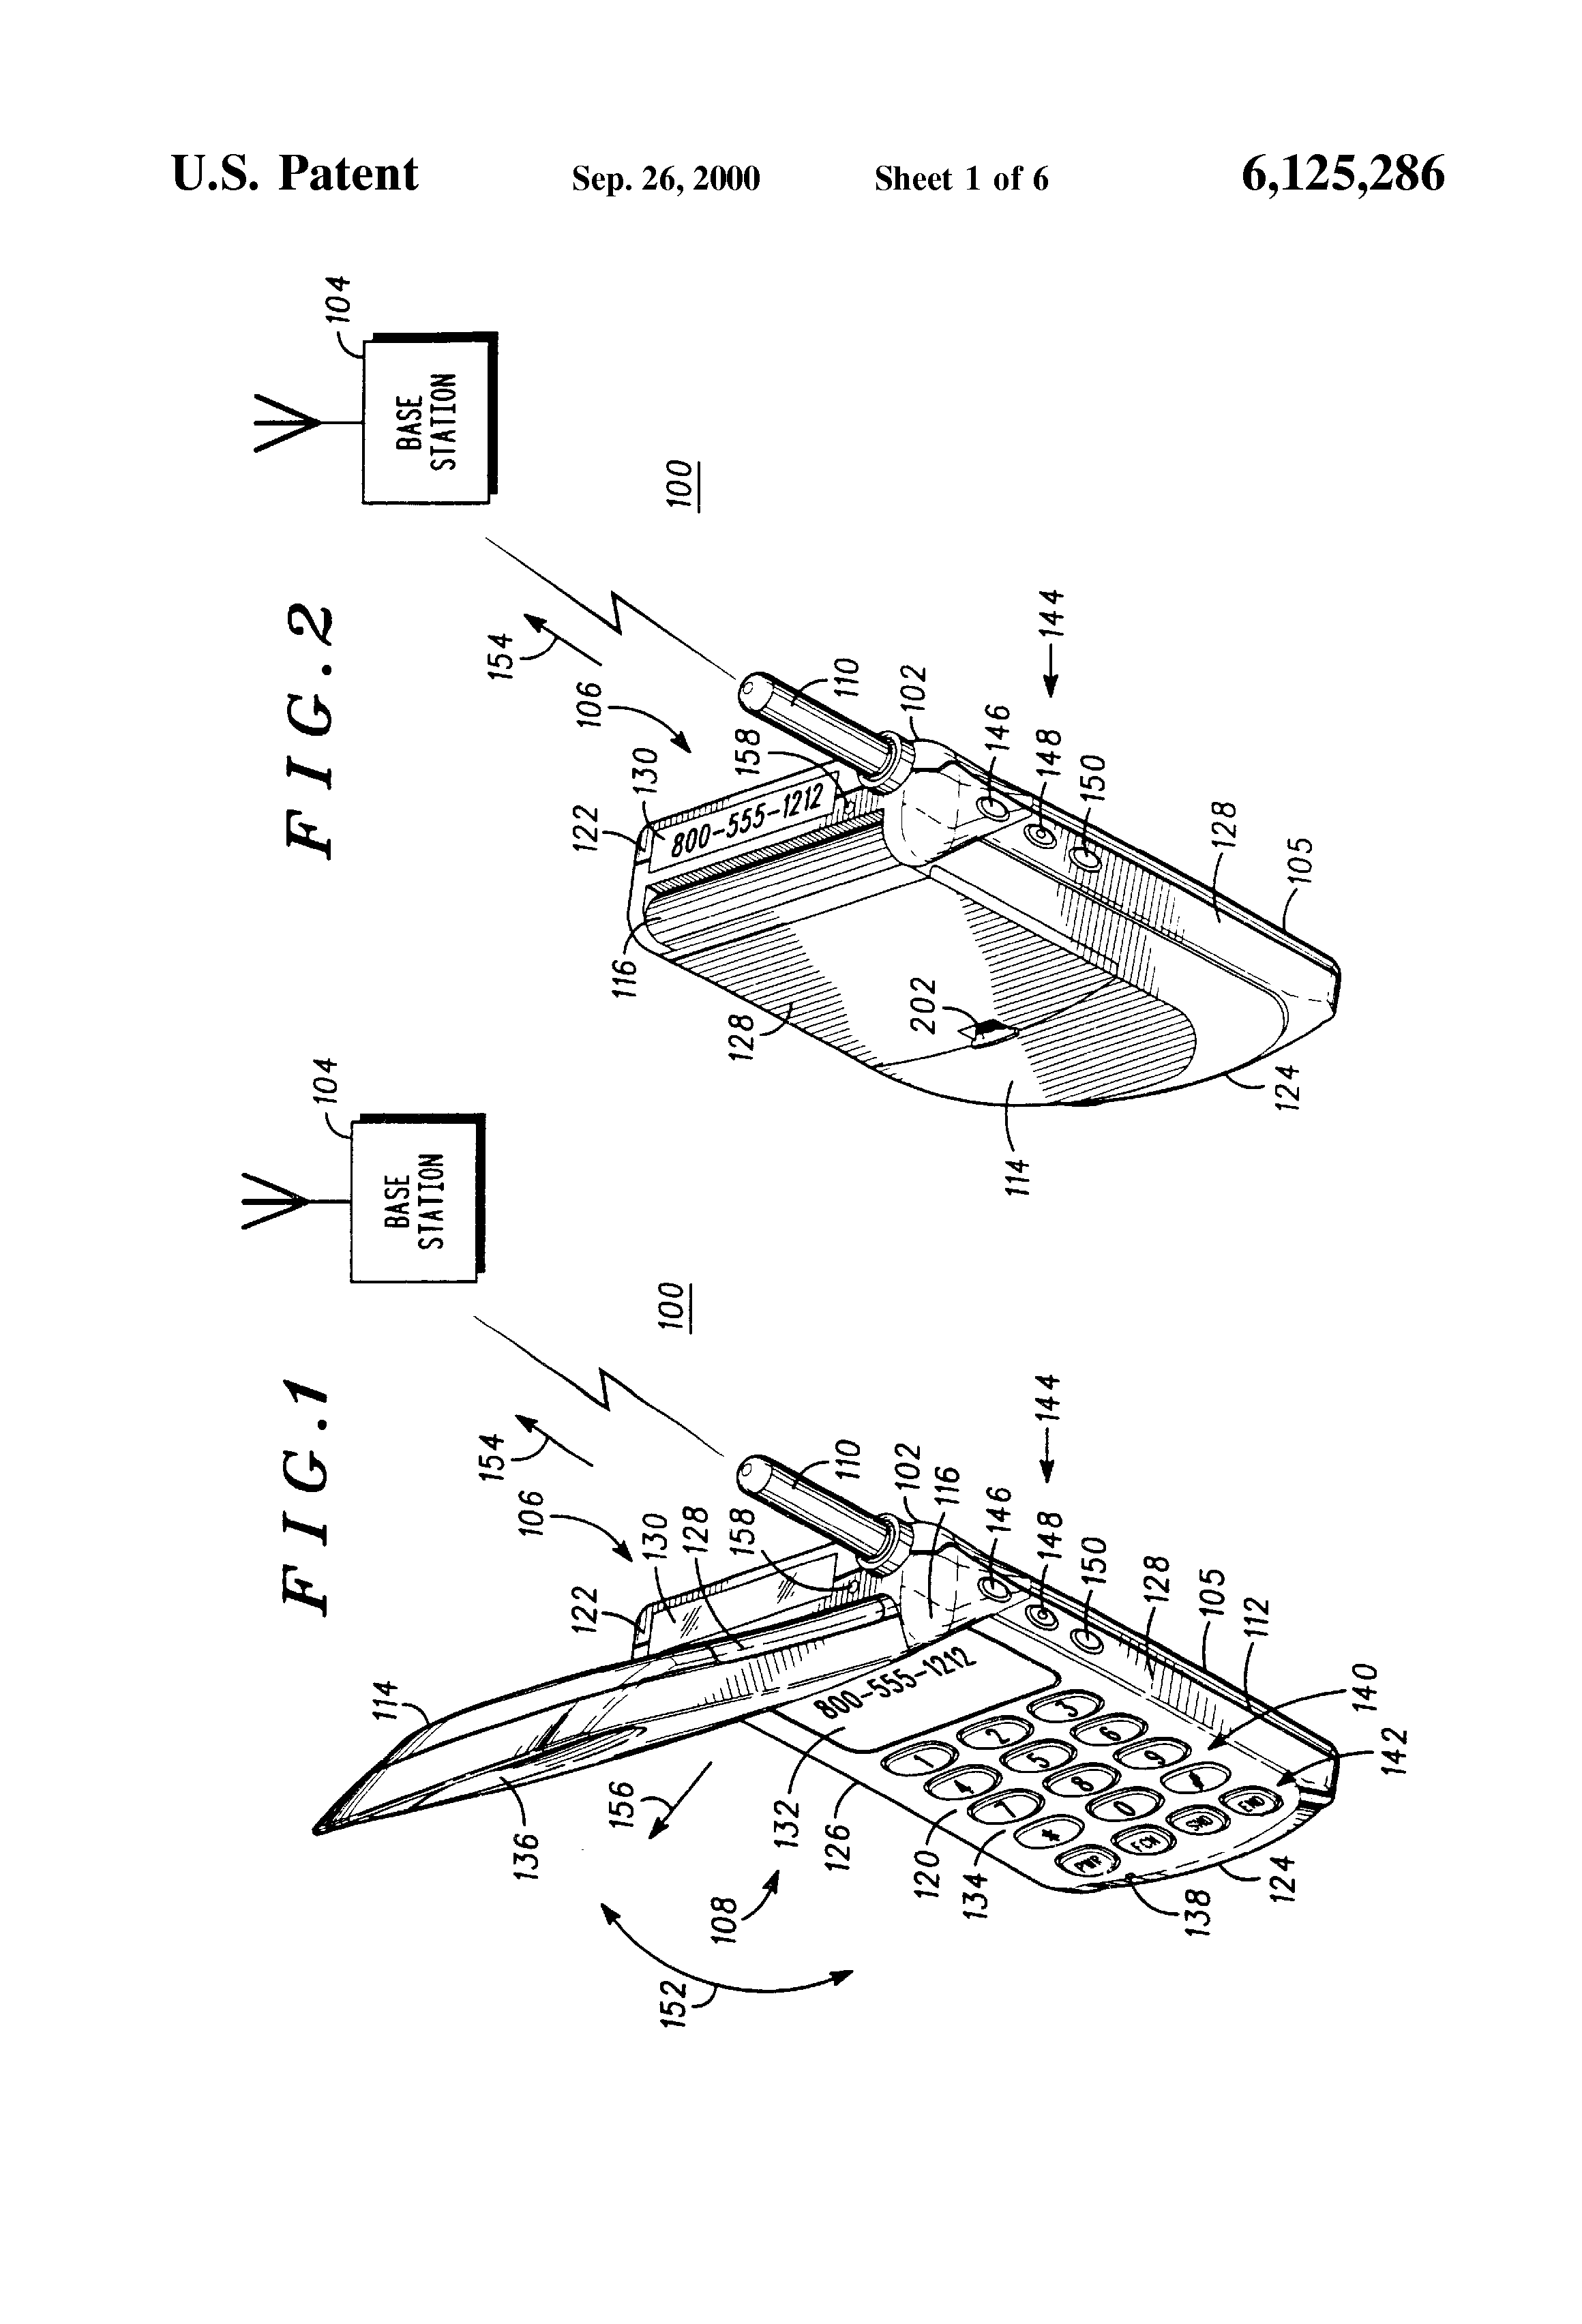 Brevet Us6125286 Communication Device Having Multiple Displays And Electric Power Saver Circuit Diagram Full Patent Drawing